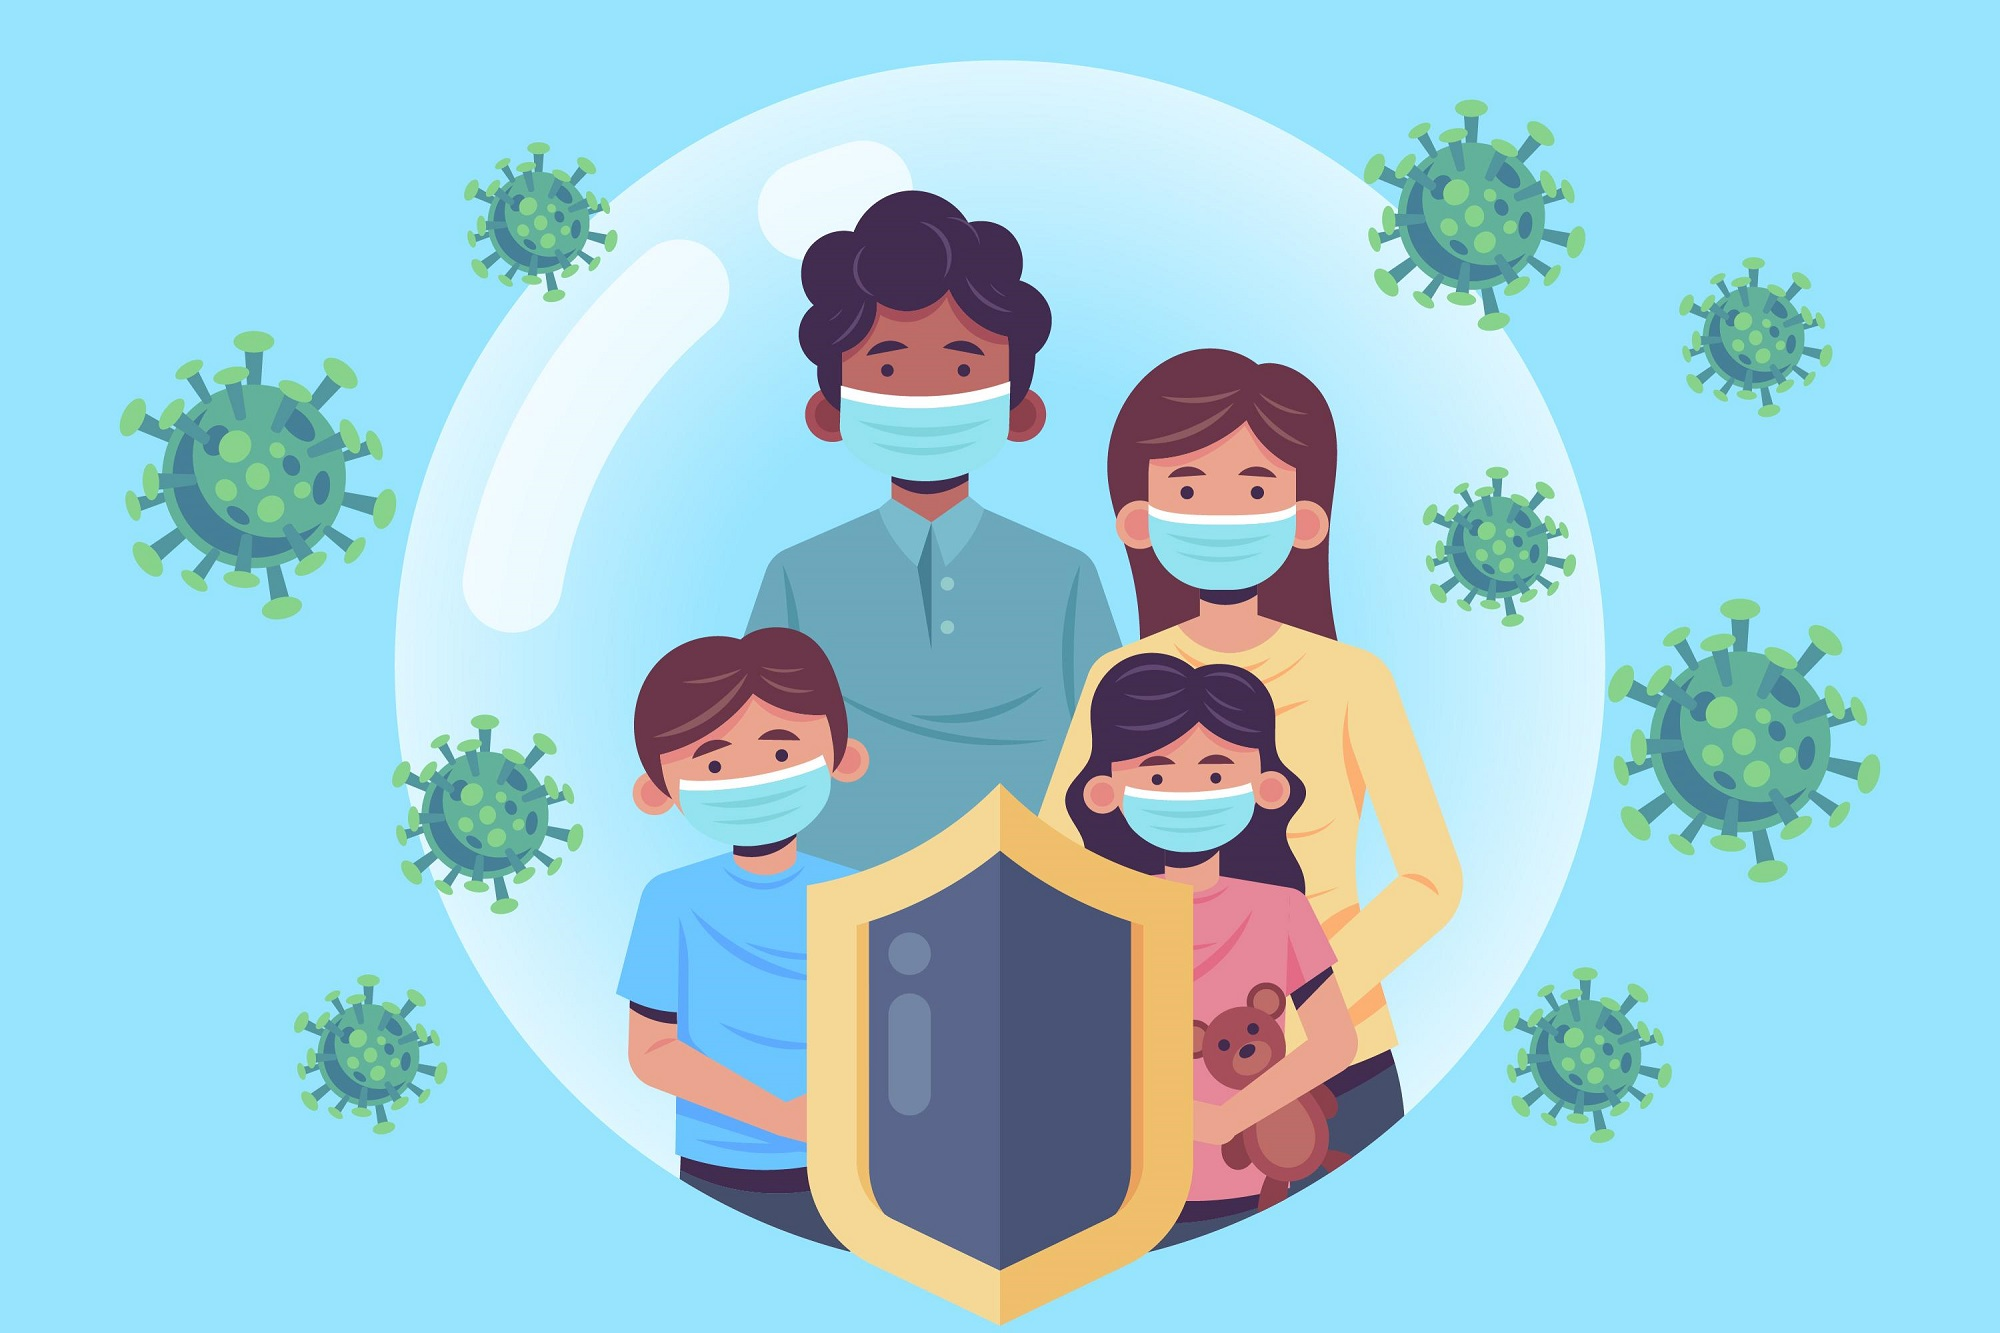 What are the healthy lifestyles after pandemic?